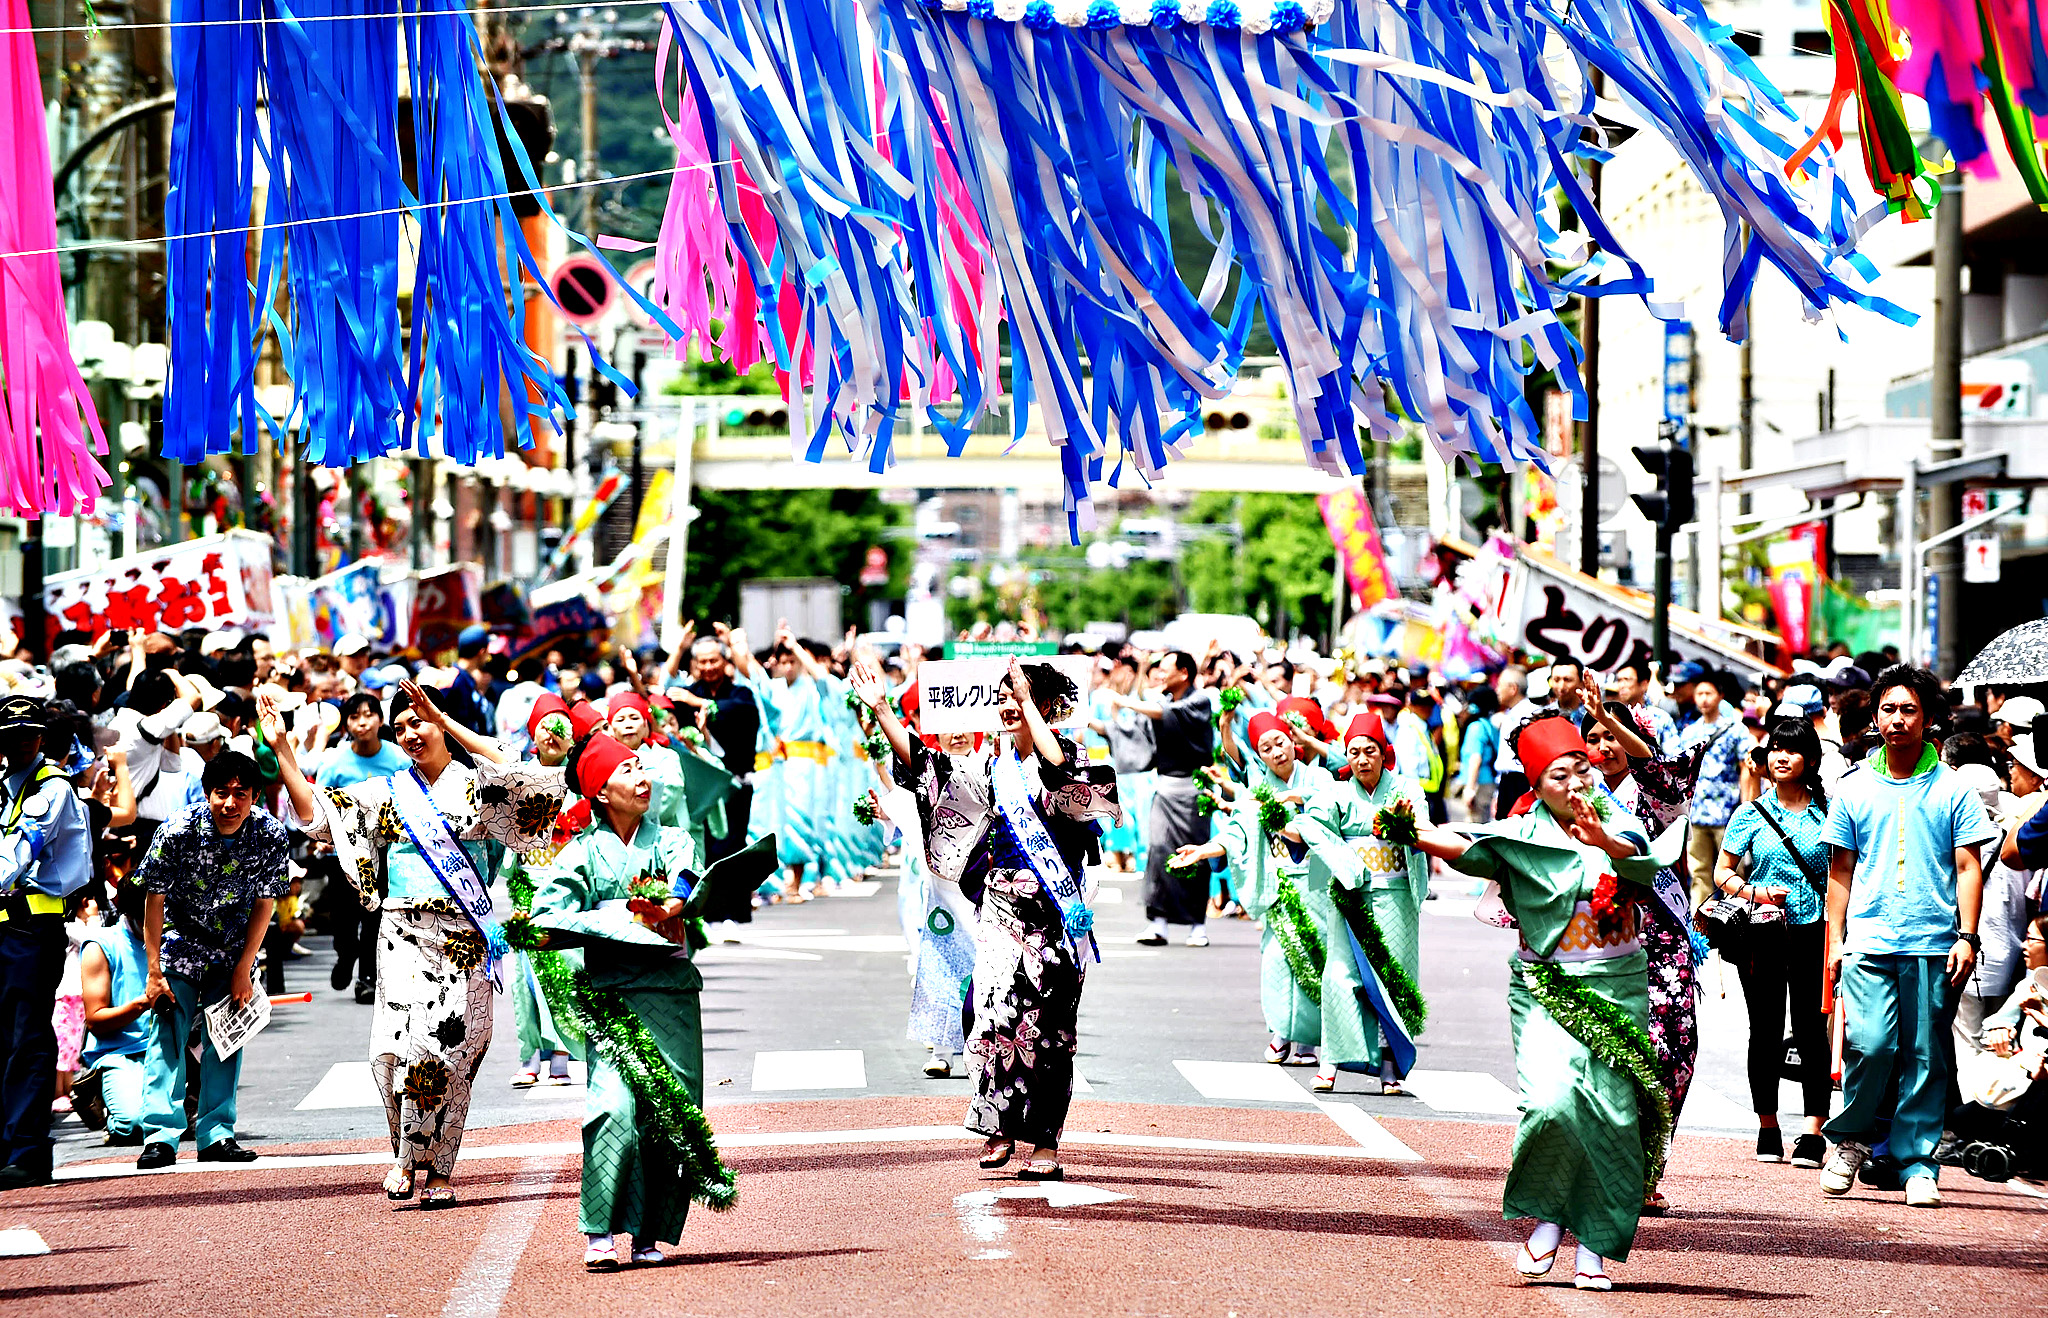 Dancers dressed in traditional costume perform dance under the colorful ornaments of Tanabata during the Shonan Hiratsuka Tanabata Festival on July 4, 2014 in Hiratsuka, Japan. Tanabata is a Japanese star festival celebrated on July 7 every year. People enjoy going out wearing traditional yukata robe and write their wishes on colorful paper strips to hang on bamboo trees.